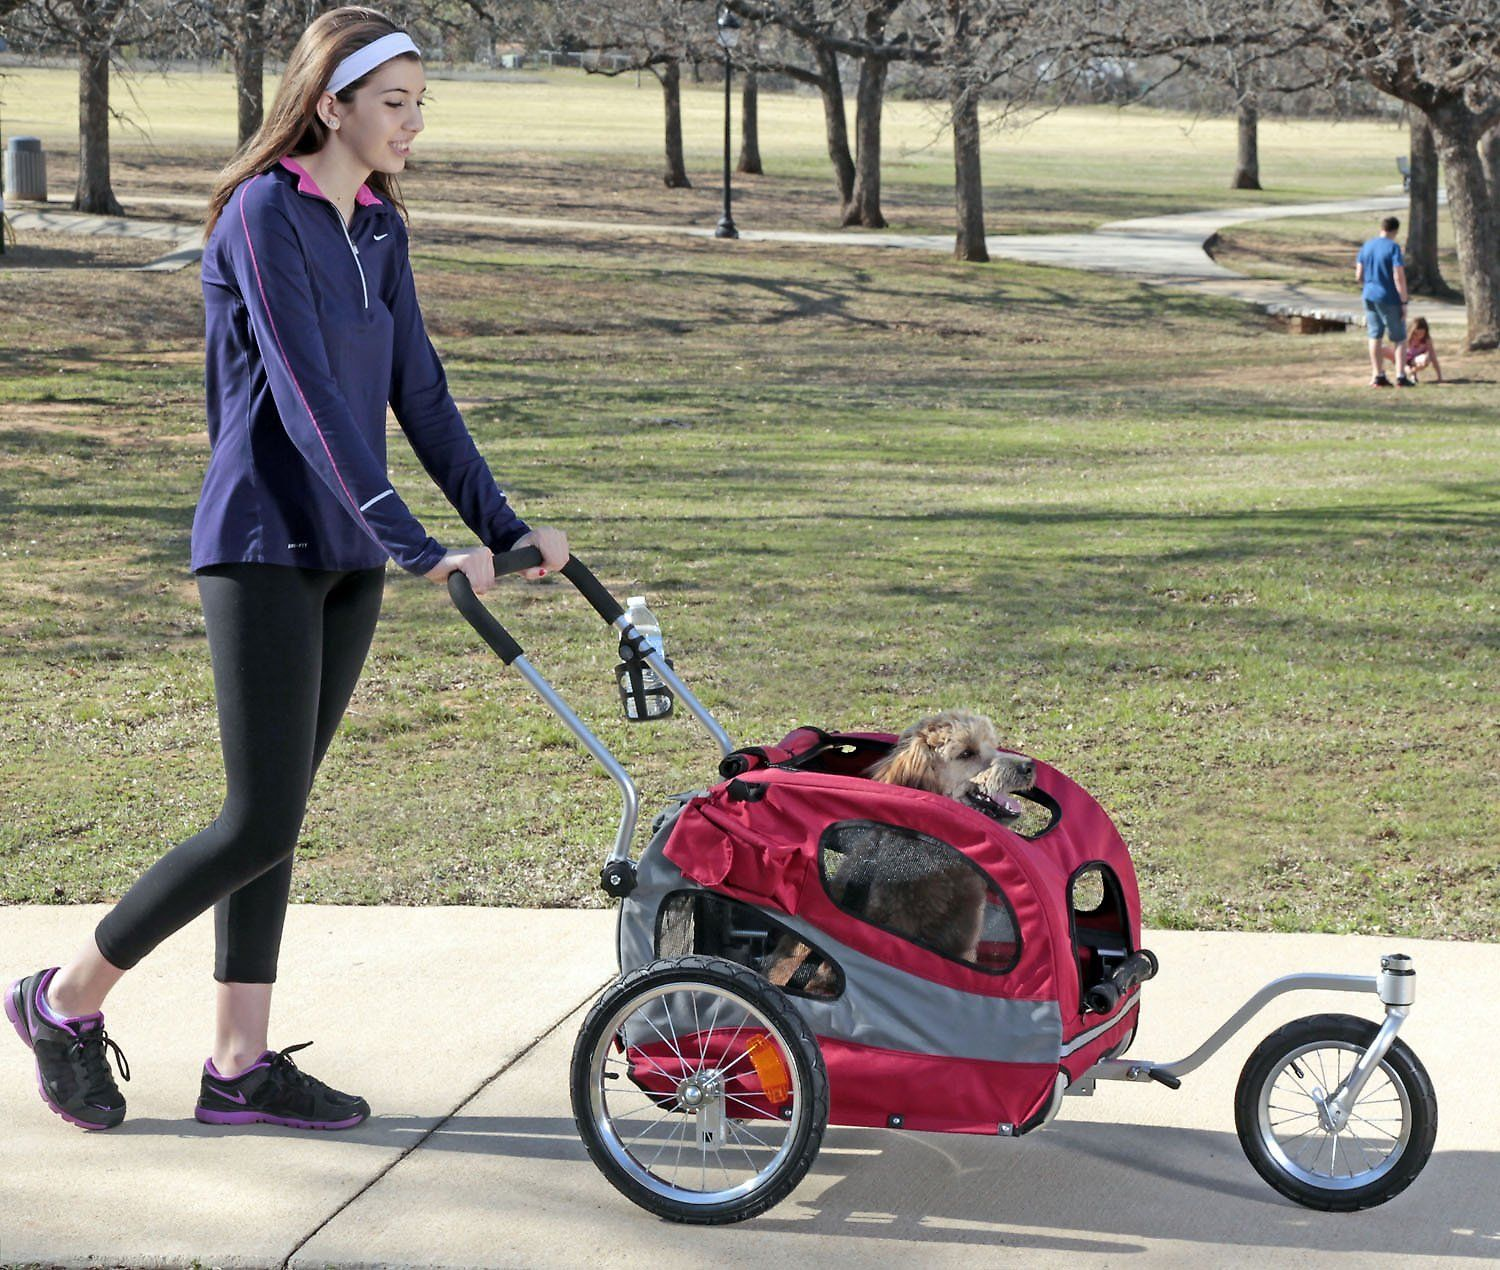 Solvit HoundAbout Classic Bicycle Trailer features a